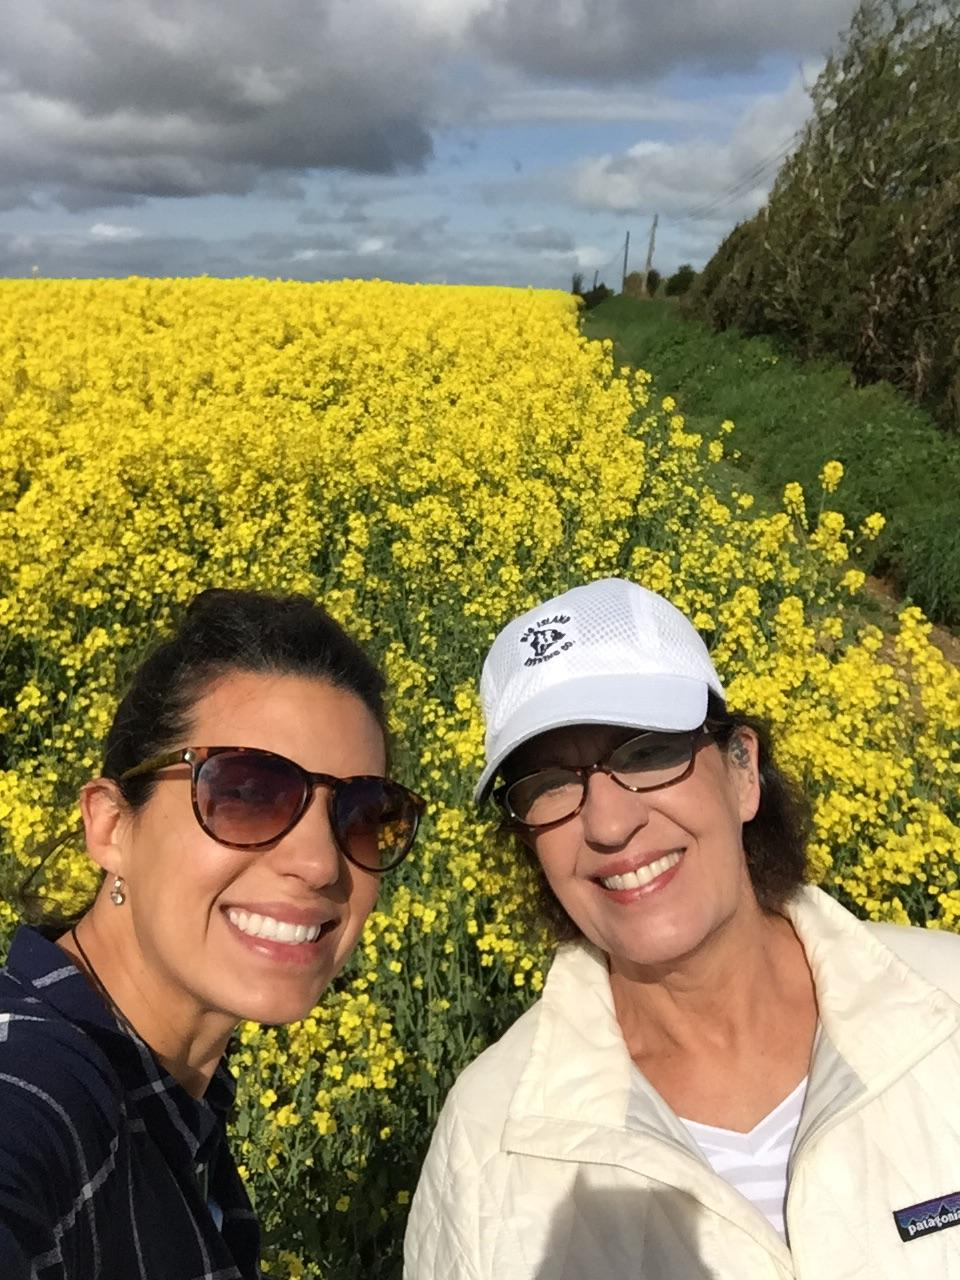 I'll never forget this moment with my mom. From the narrow curvy road to the surprise field of endless yellow flowers!